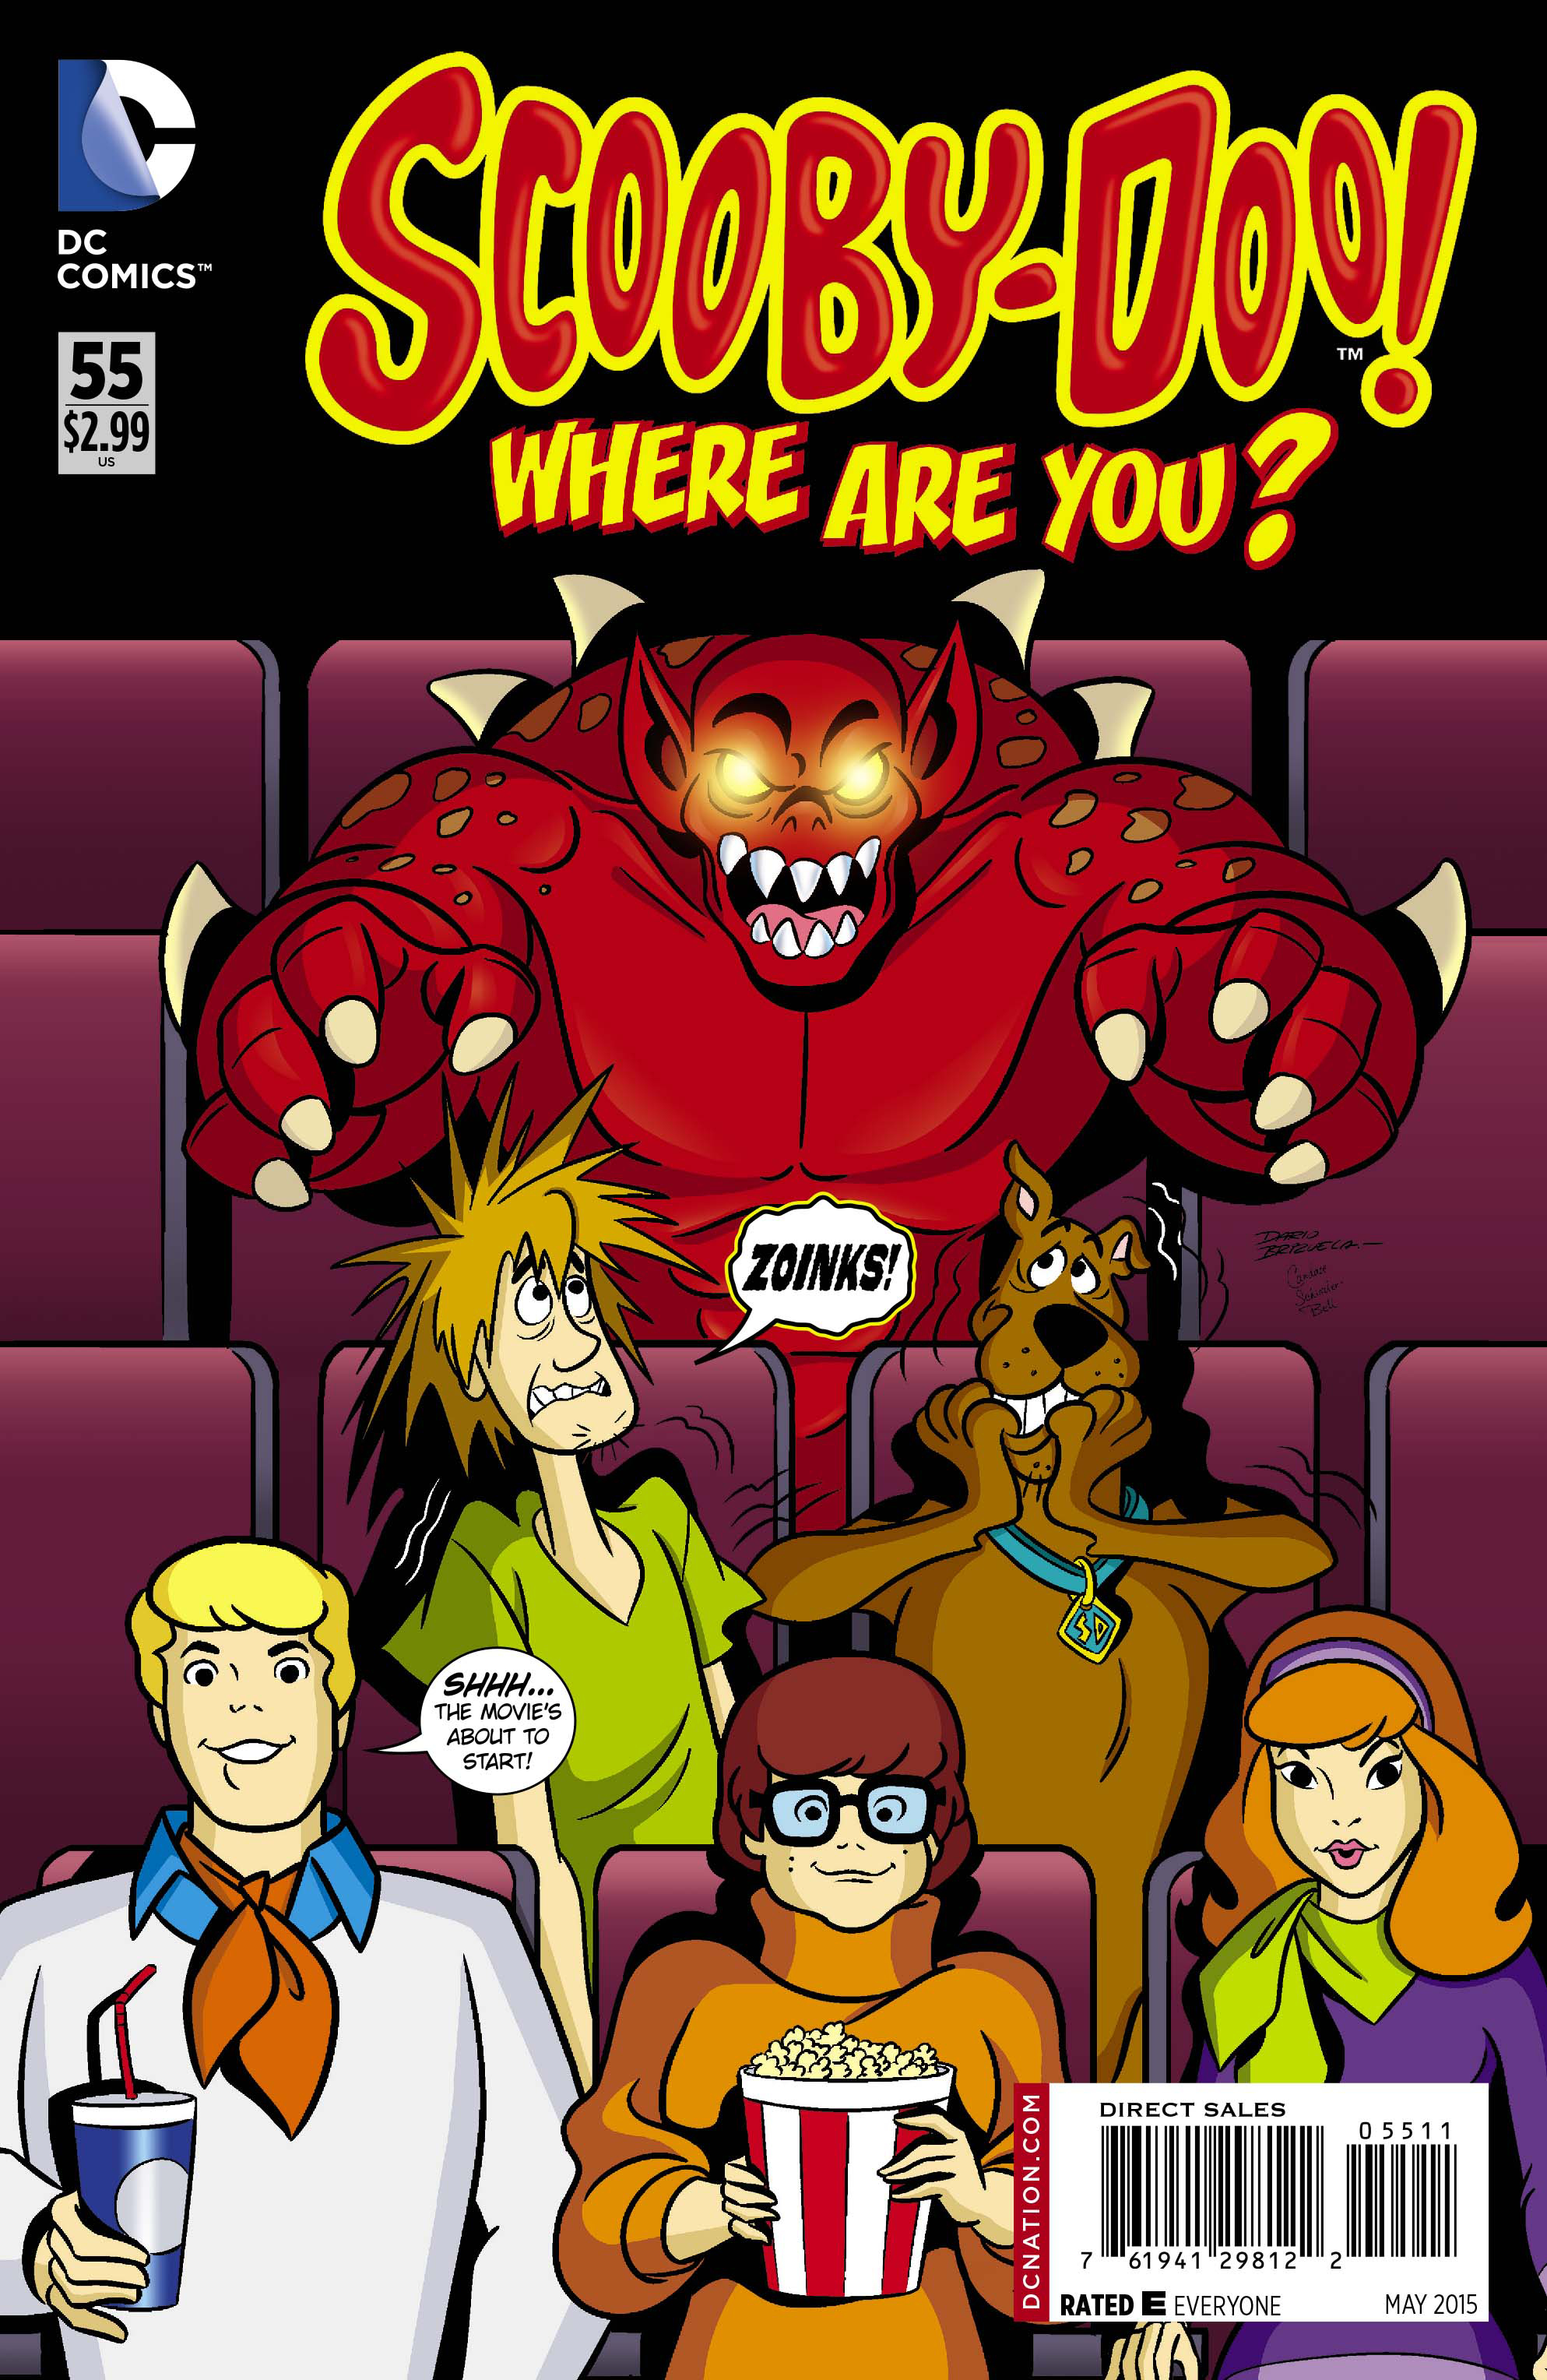 SCOOBY DOO WHERE ARE YOU #55